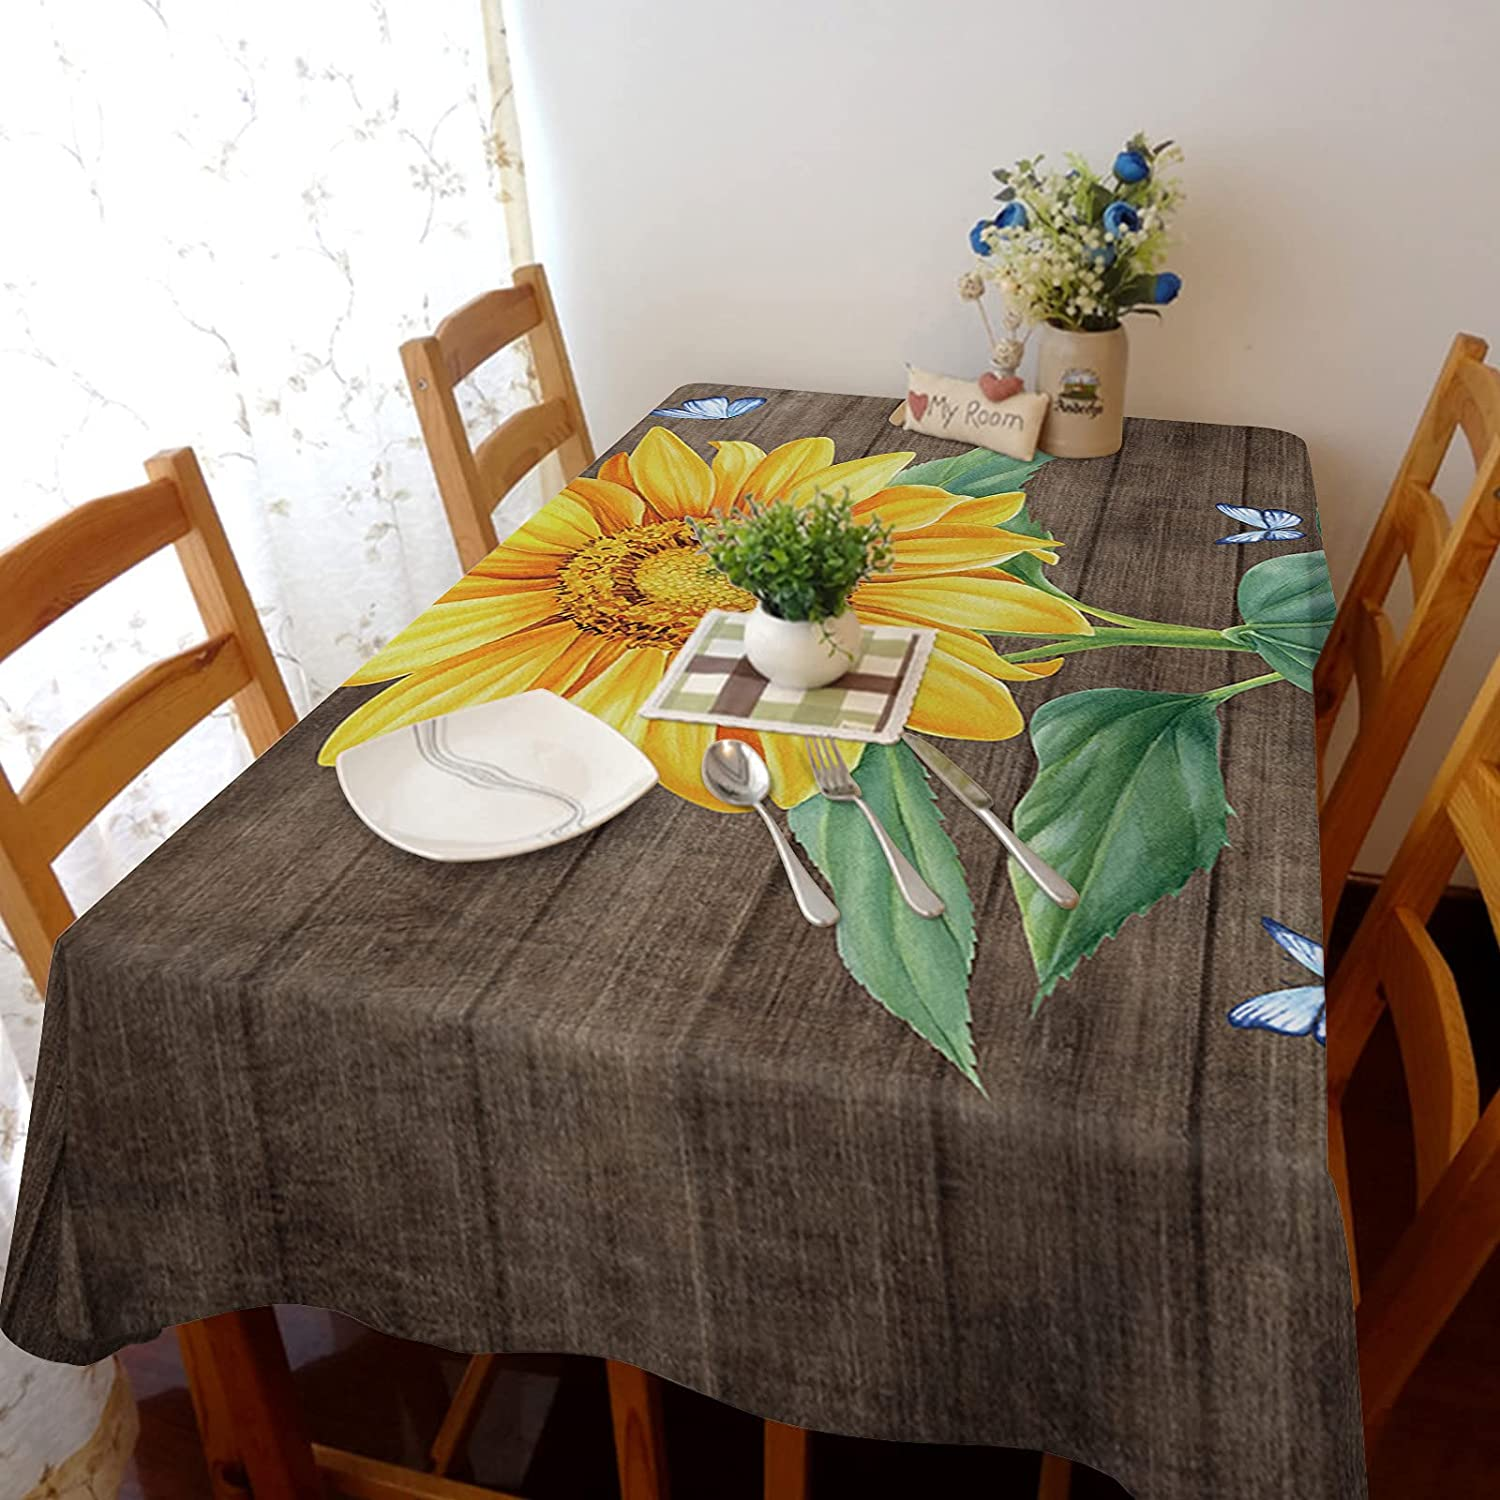 Queenker Square Tablecloth Dining Table Cover Sunflower But Farm Austin Mall 2021new shipping free